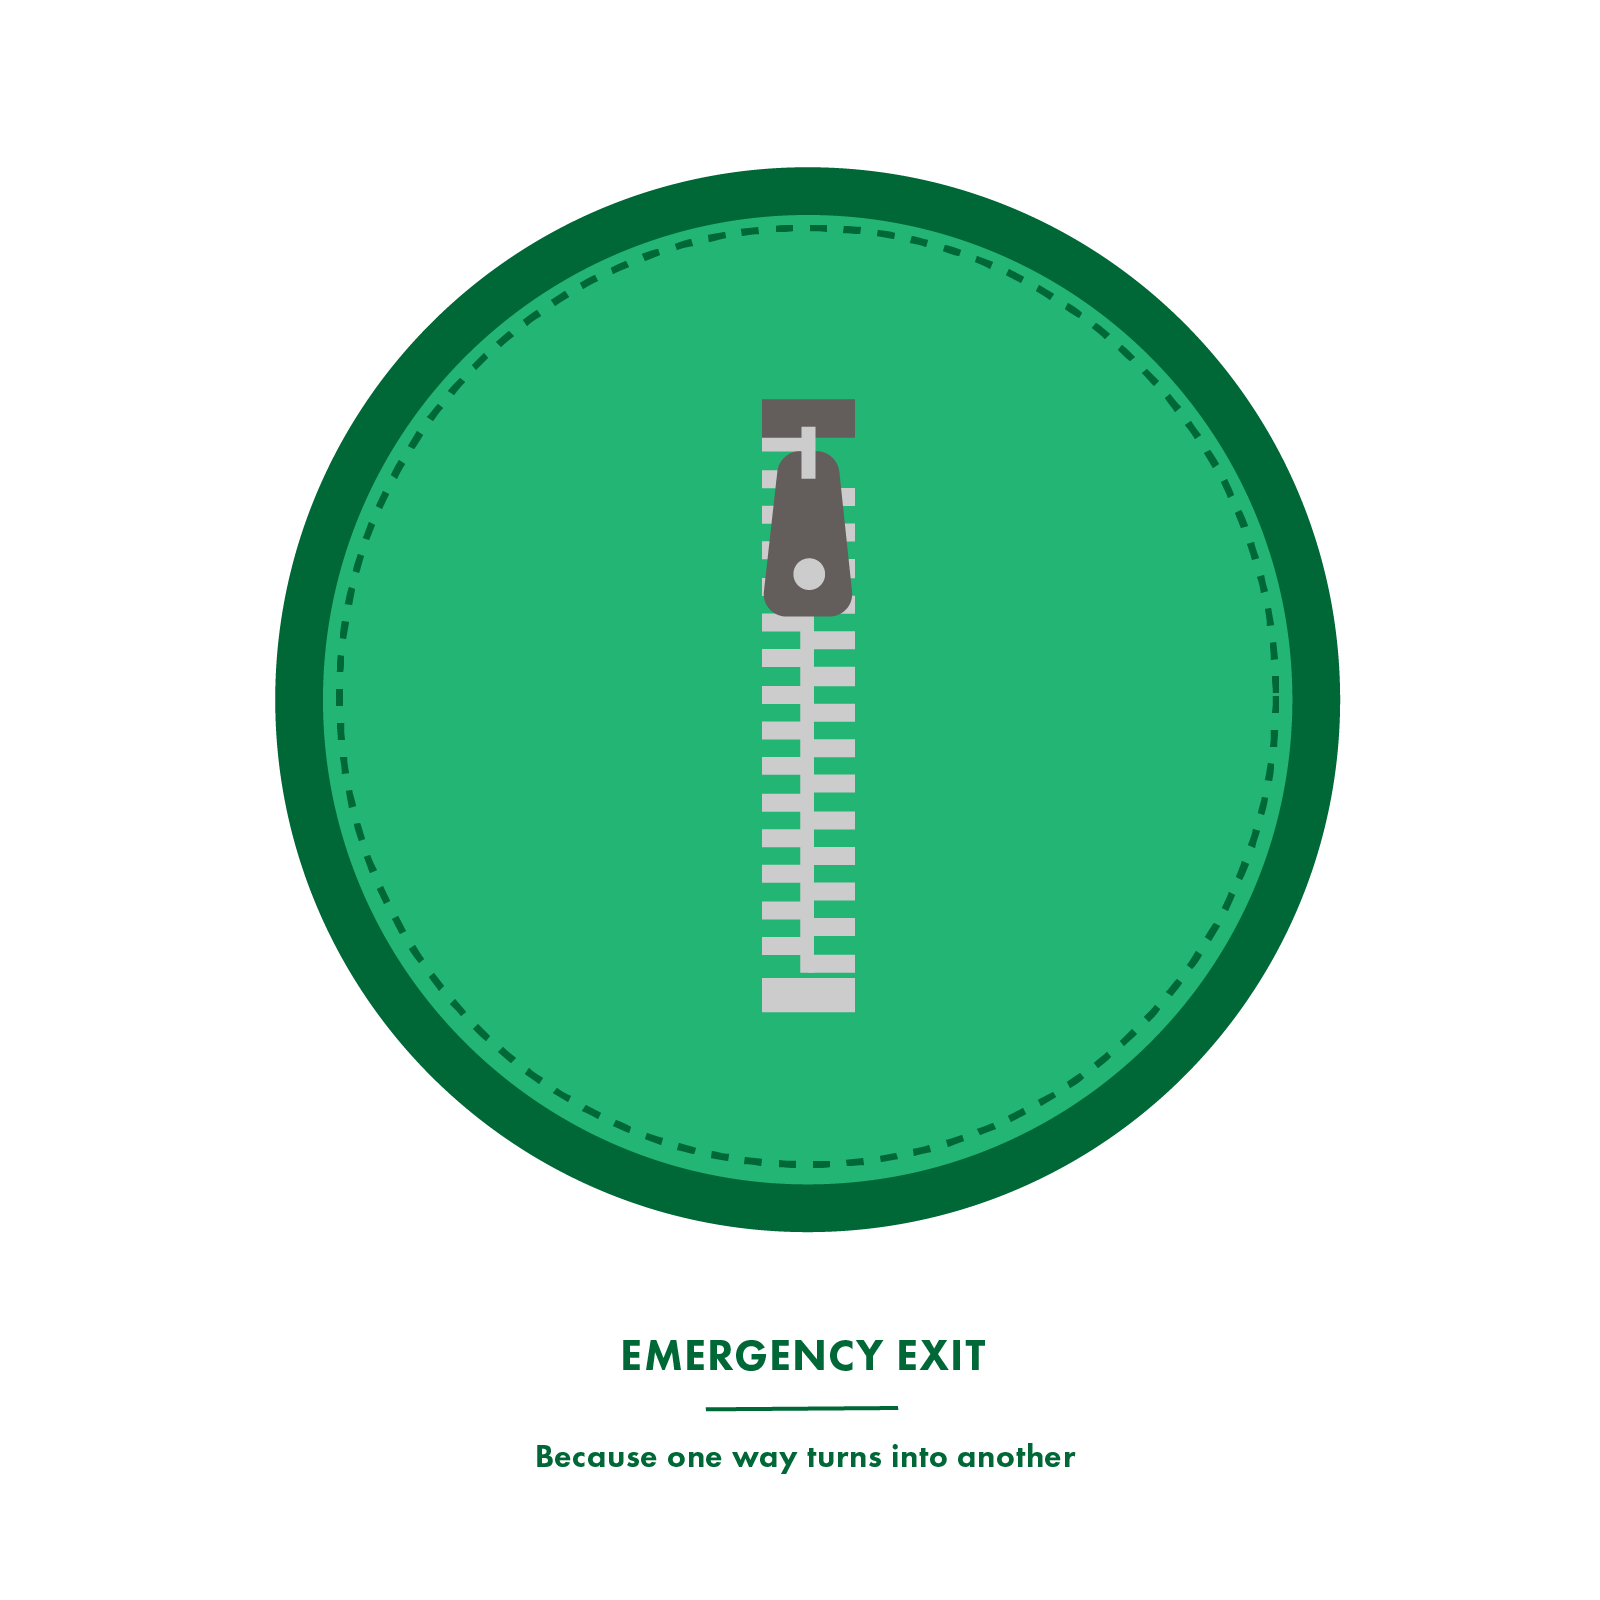 Emergency Exit@2x.png